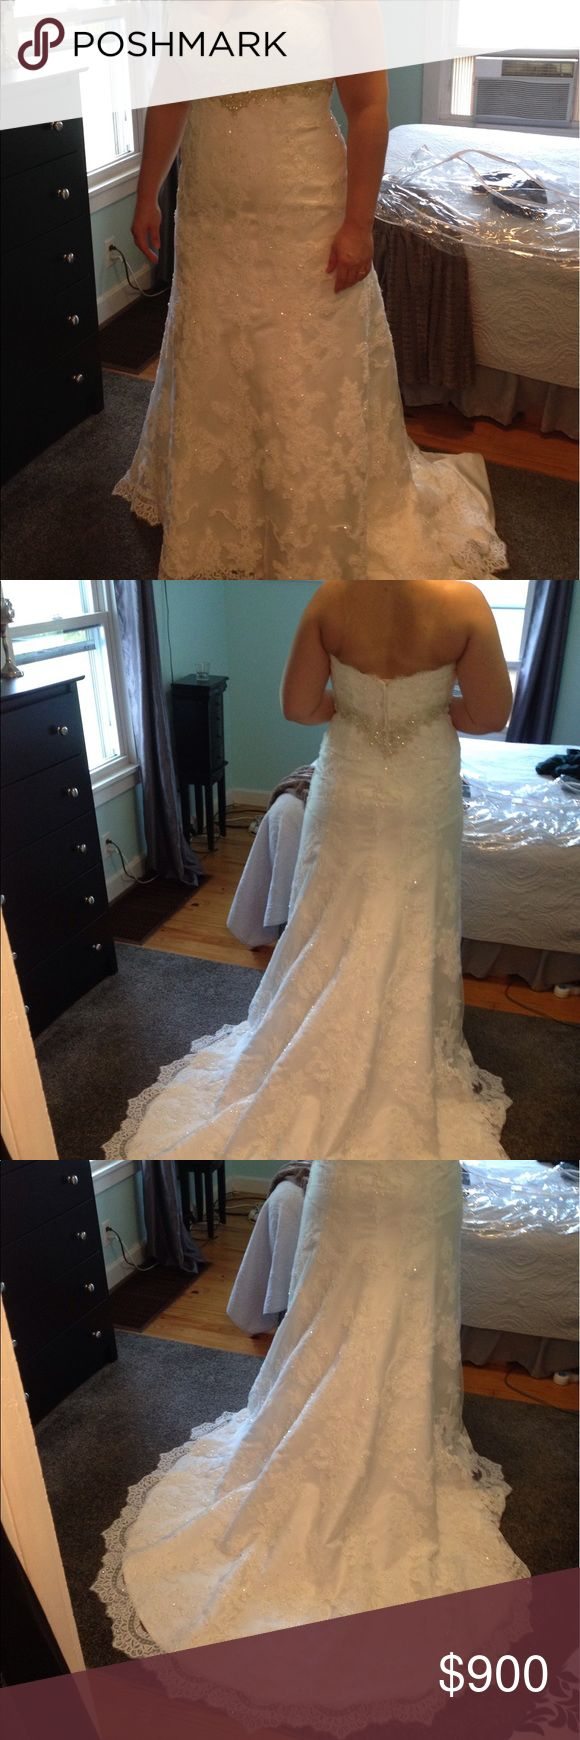 Casablanca 2072 Wedding Dress Casablanca 2072 wedding dress- never used! I bought this for my July 2017 wedding but found something I liked better. It is a size 16 (my usual dress size is a 14) and is in the color ivory/ivory/silver. It has stunning beaded lace and scalloped lace around the bottom. The retail price is $1300. casablanca Dresses Wedding